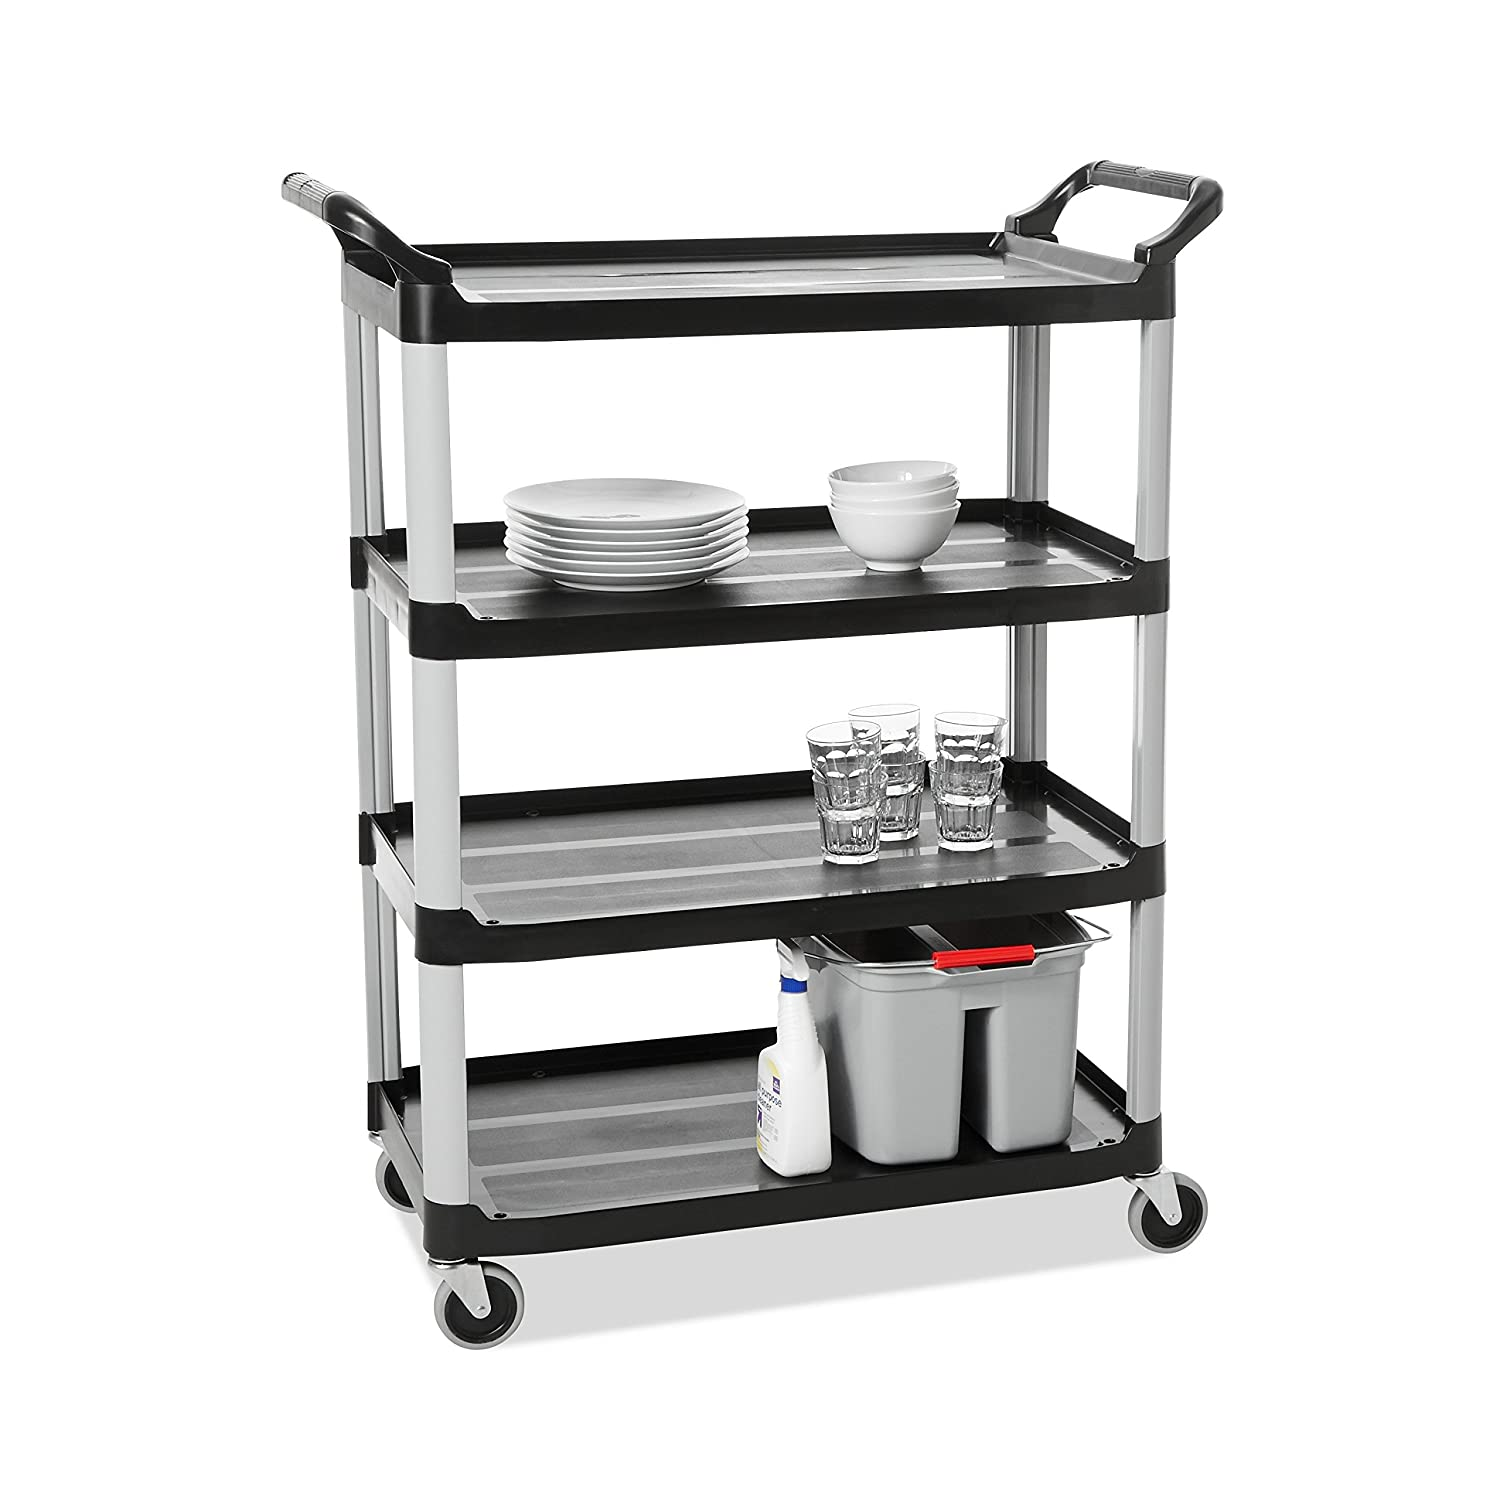 B000LE6MO8 Rubbermaid Commercial Products Heavy Duty 4-Shelf Rolling Service/Utility/Push Cart, 300 lbs. Capacity, Platinum, for Foodservice/Restaurant/Cleaning (FG409600BLA) 61UpqYStOxL